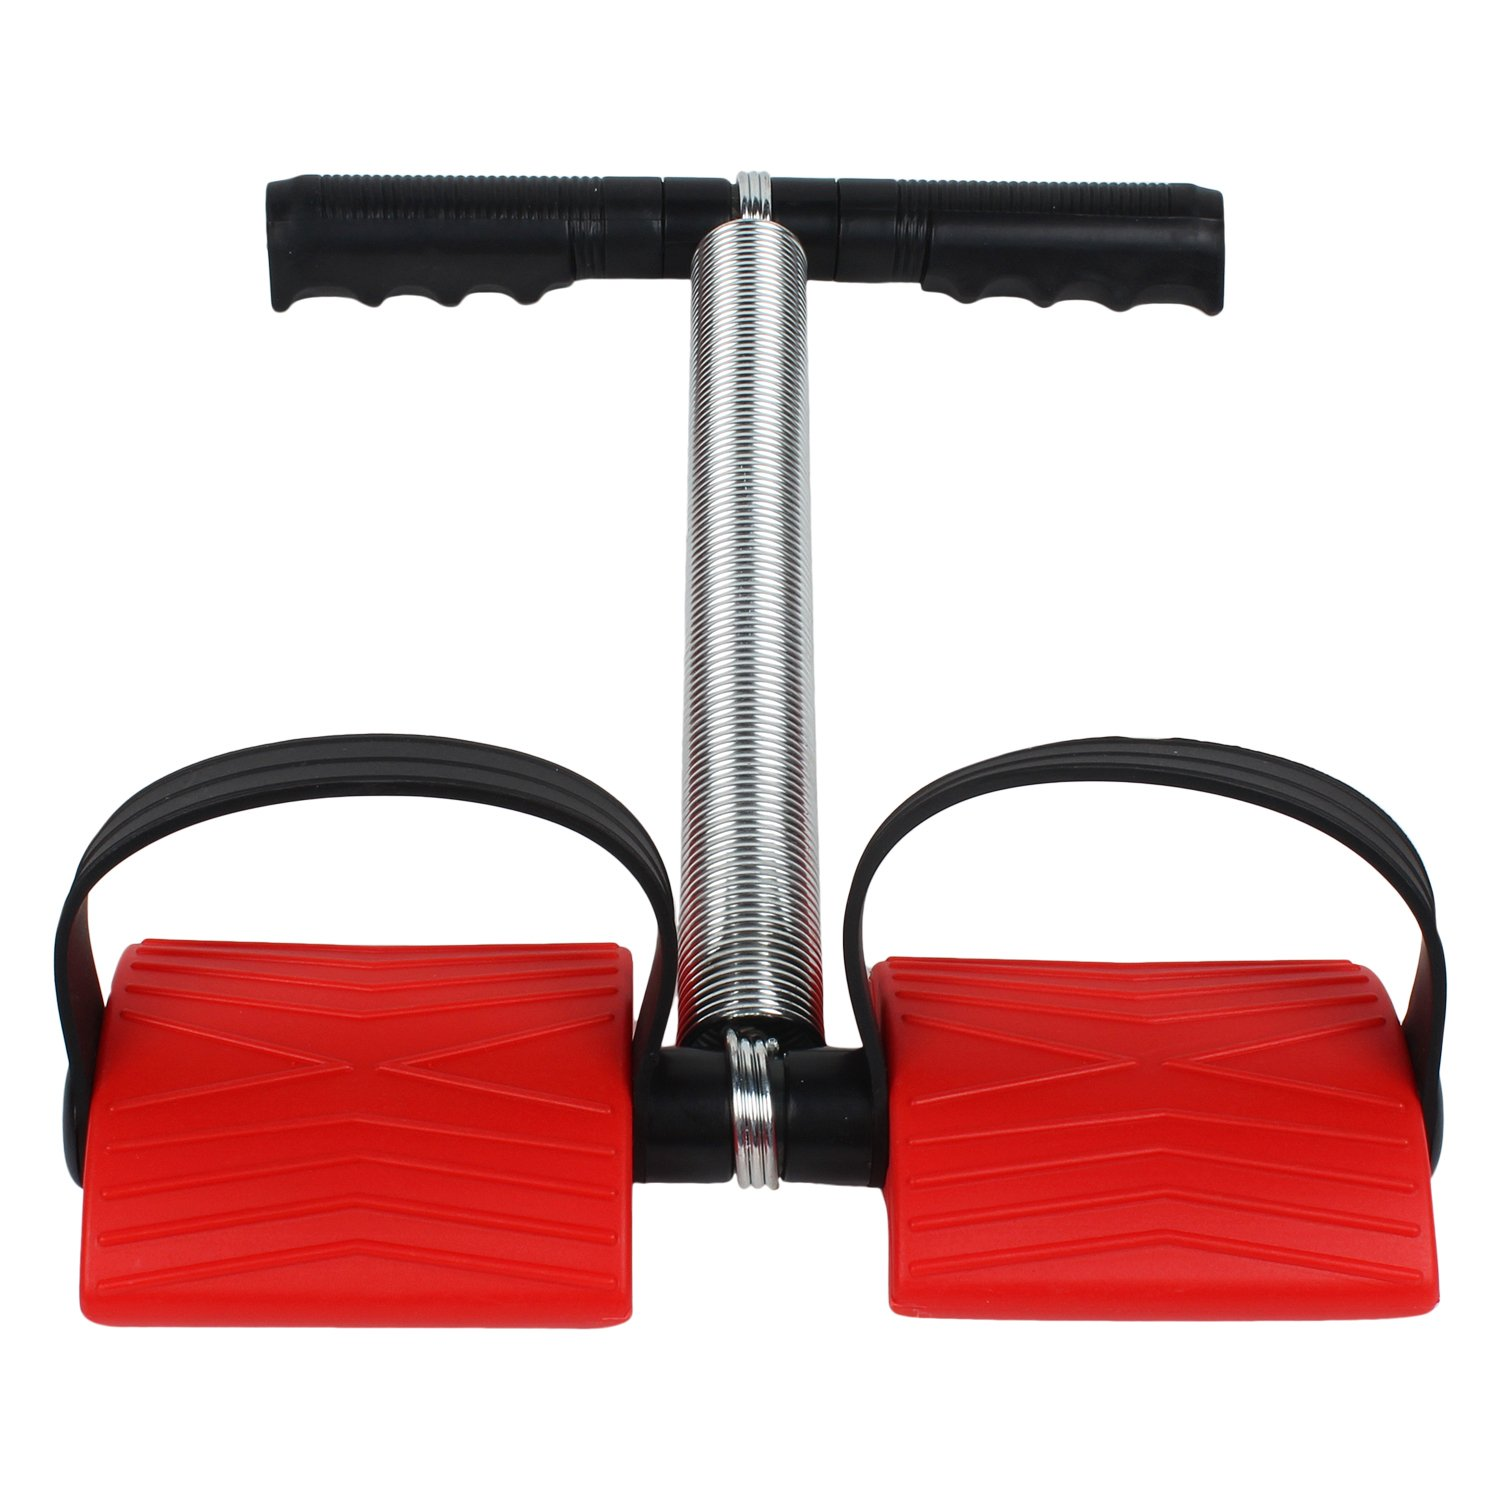 Upto 50% Off On Sports Fitness Equipment By Amazon | Strauss Tummy Trimmer @ Rs.350